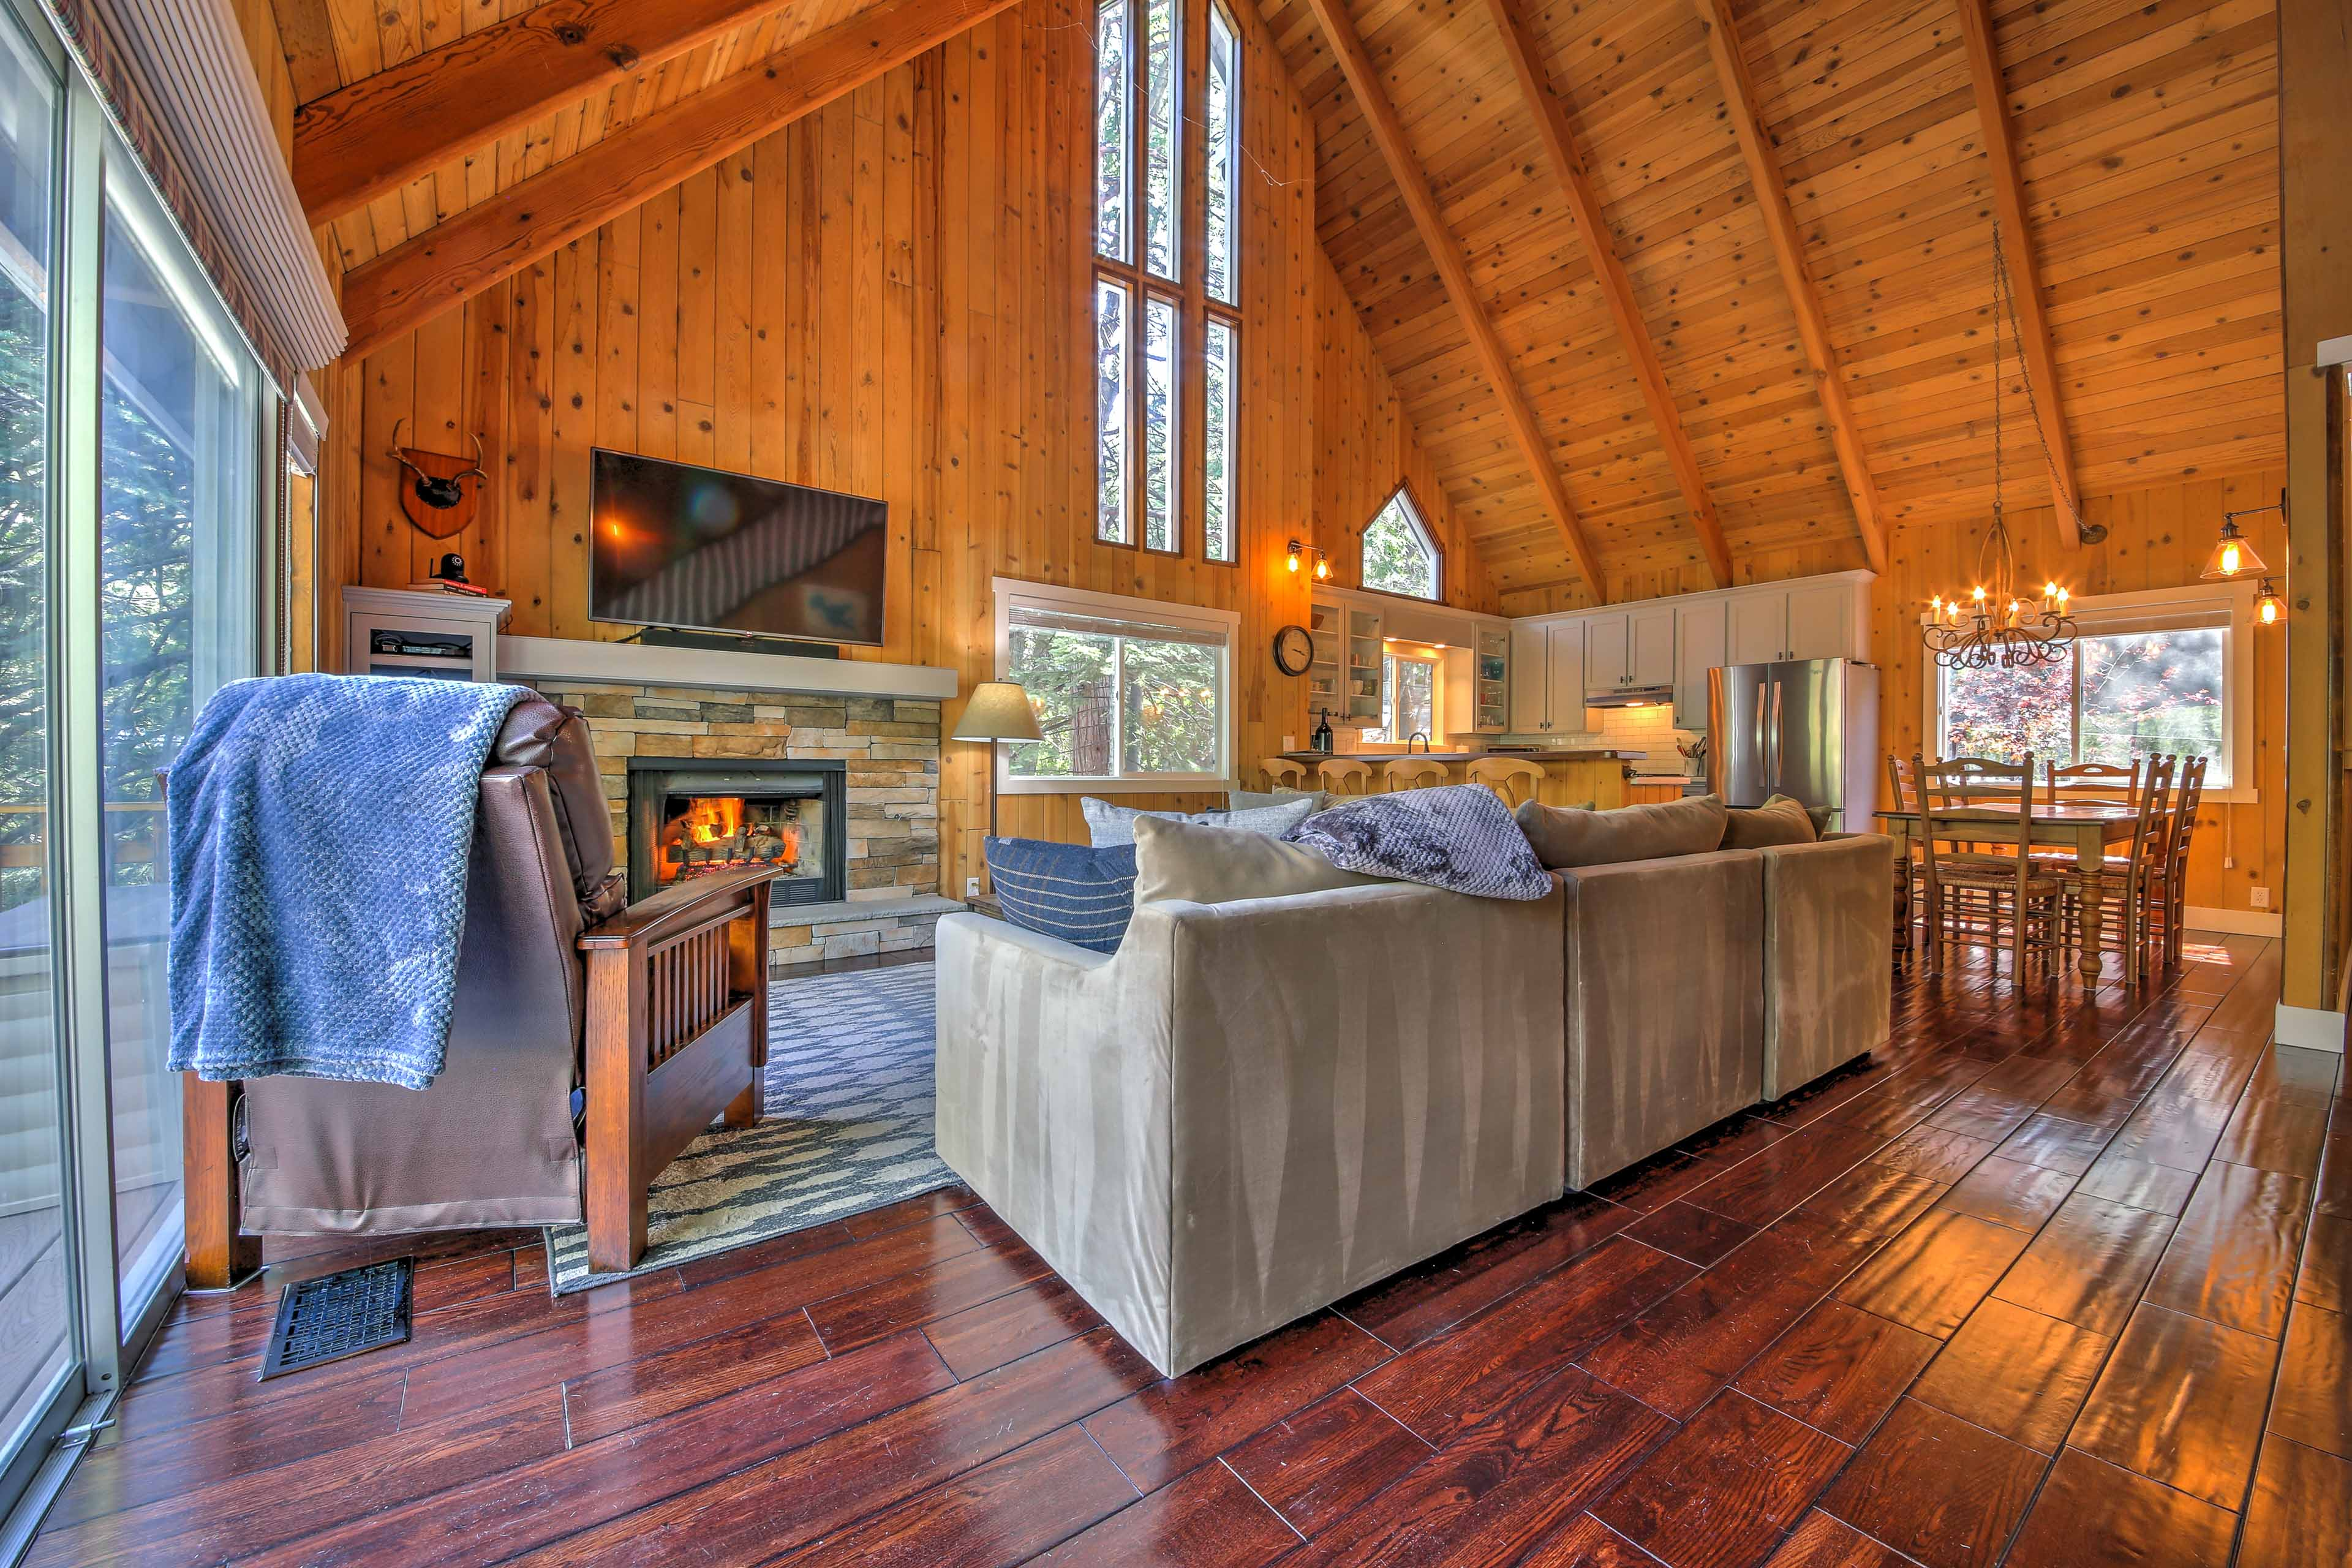 Warm up in front of the gas-powered fireplace and watch the flat-screen TV.